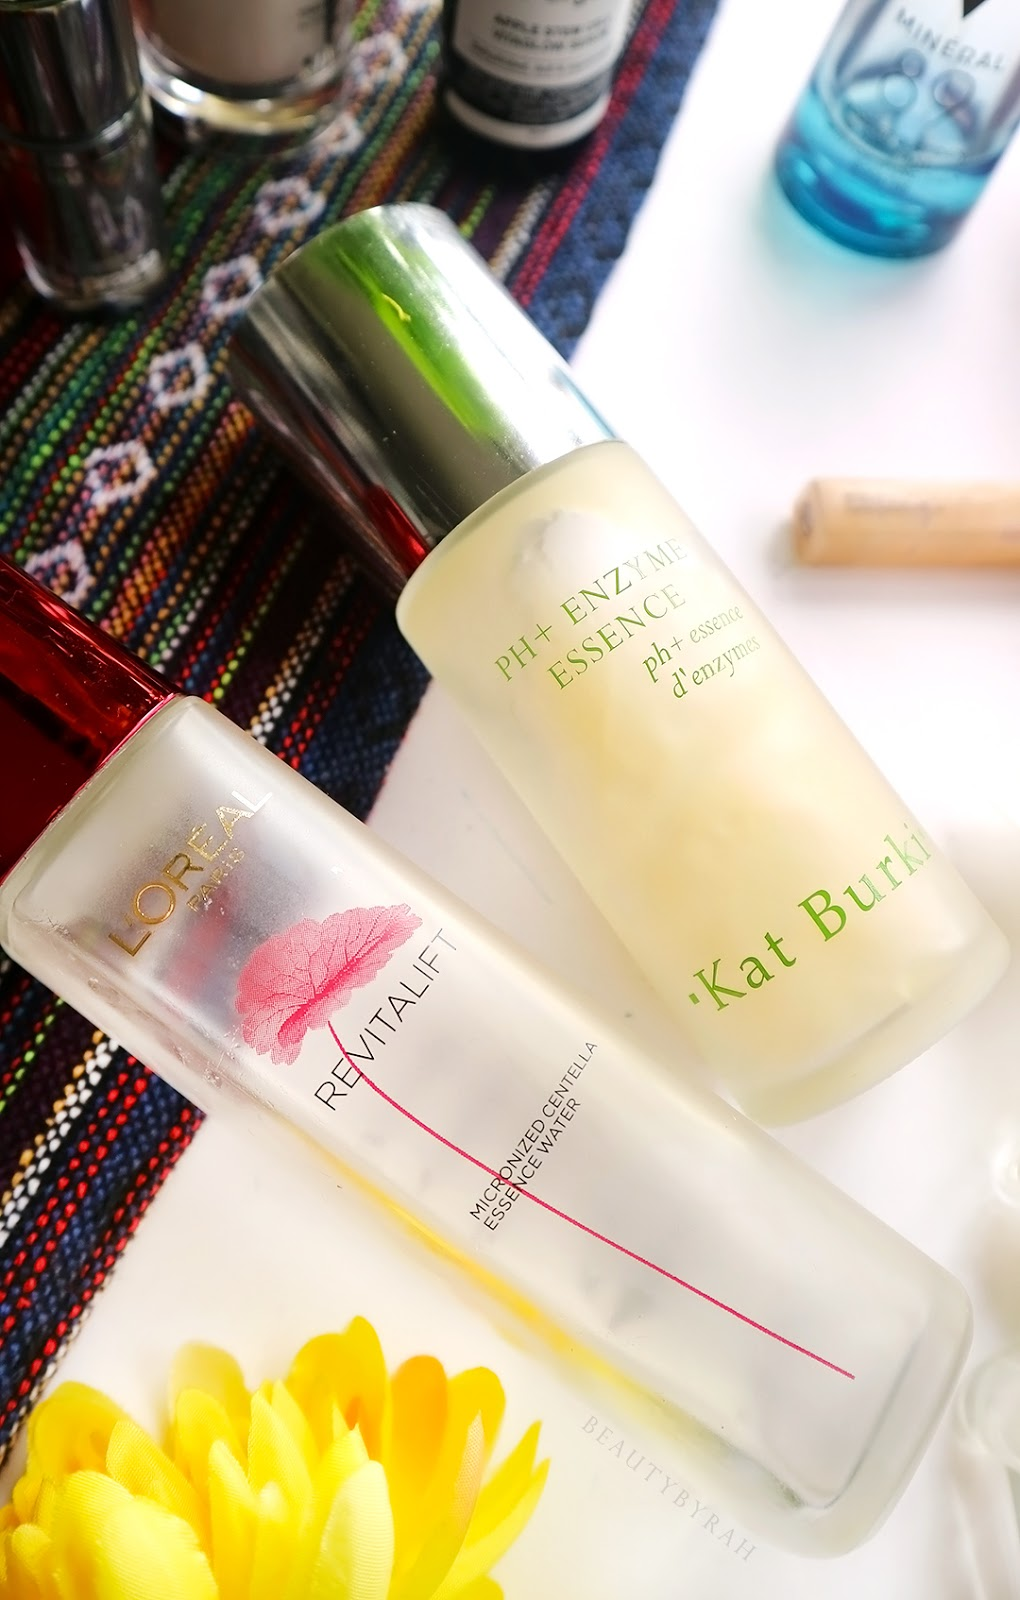 Kat Burki PH+ Enzyme Essence and Loreal Revitalift Micronised Centella Essence Review